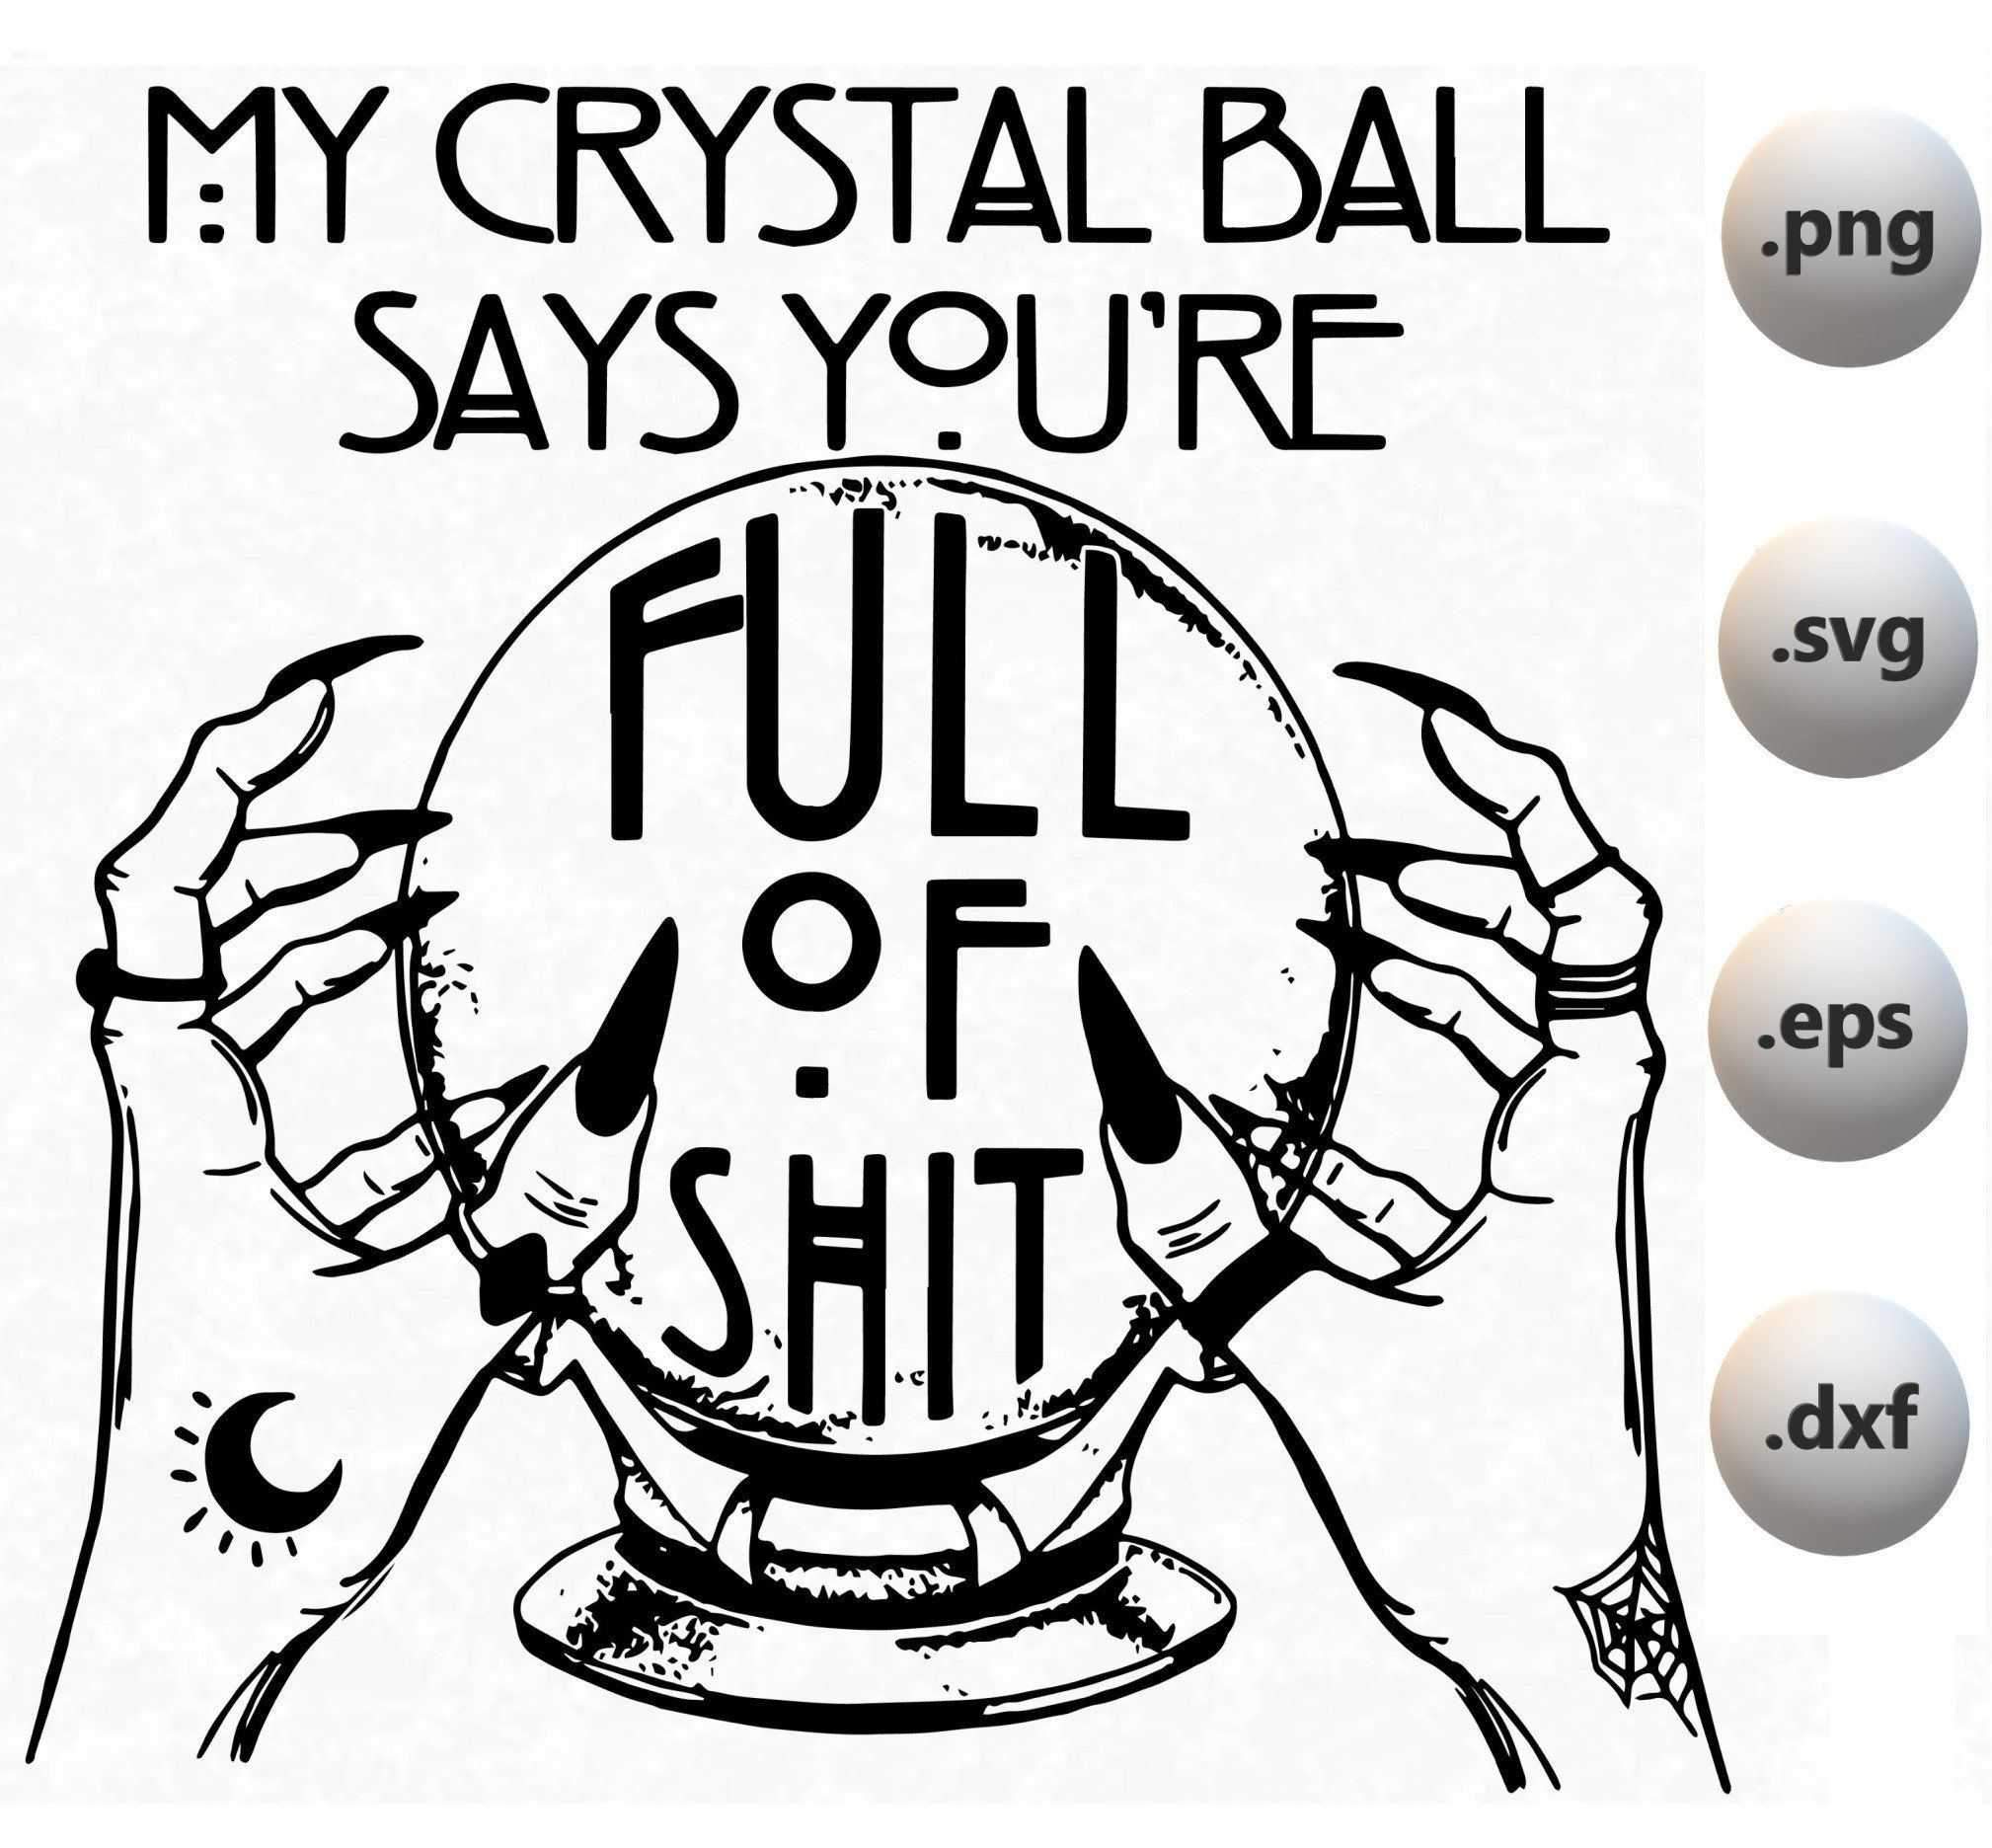 My Crystal Ball Says You Re Full Of Shit Svg Fortune Teller Svg Halloween Svg Cricut Printable Svg Shirt Design In 2021 Full Of Shit Crystal Ball Sayings